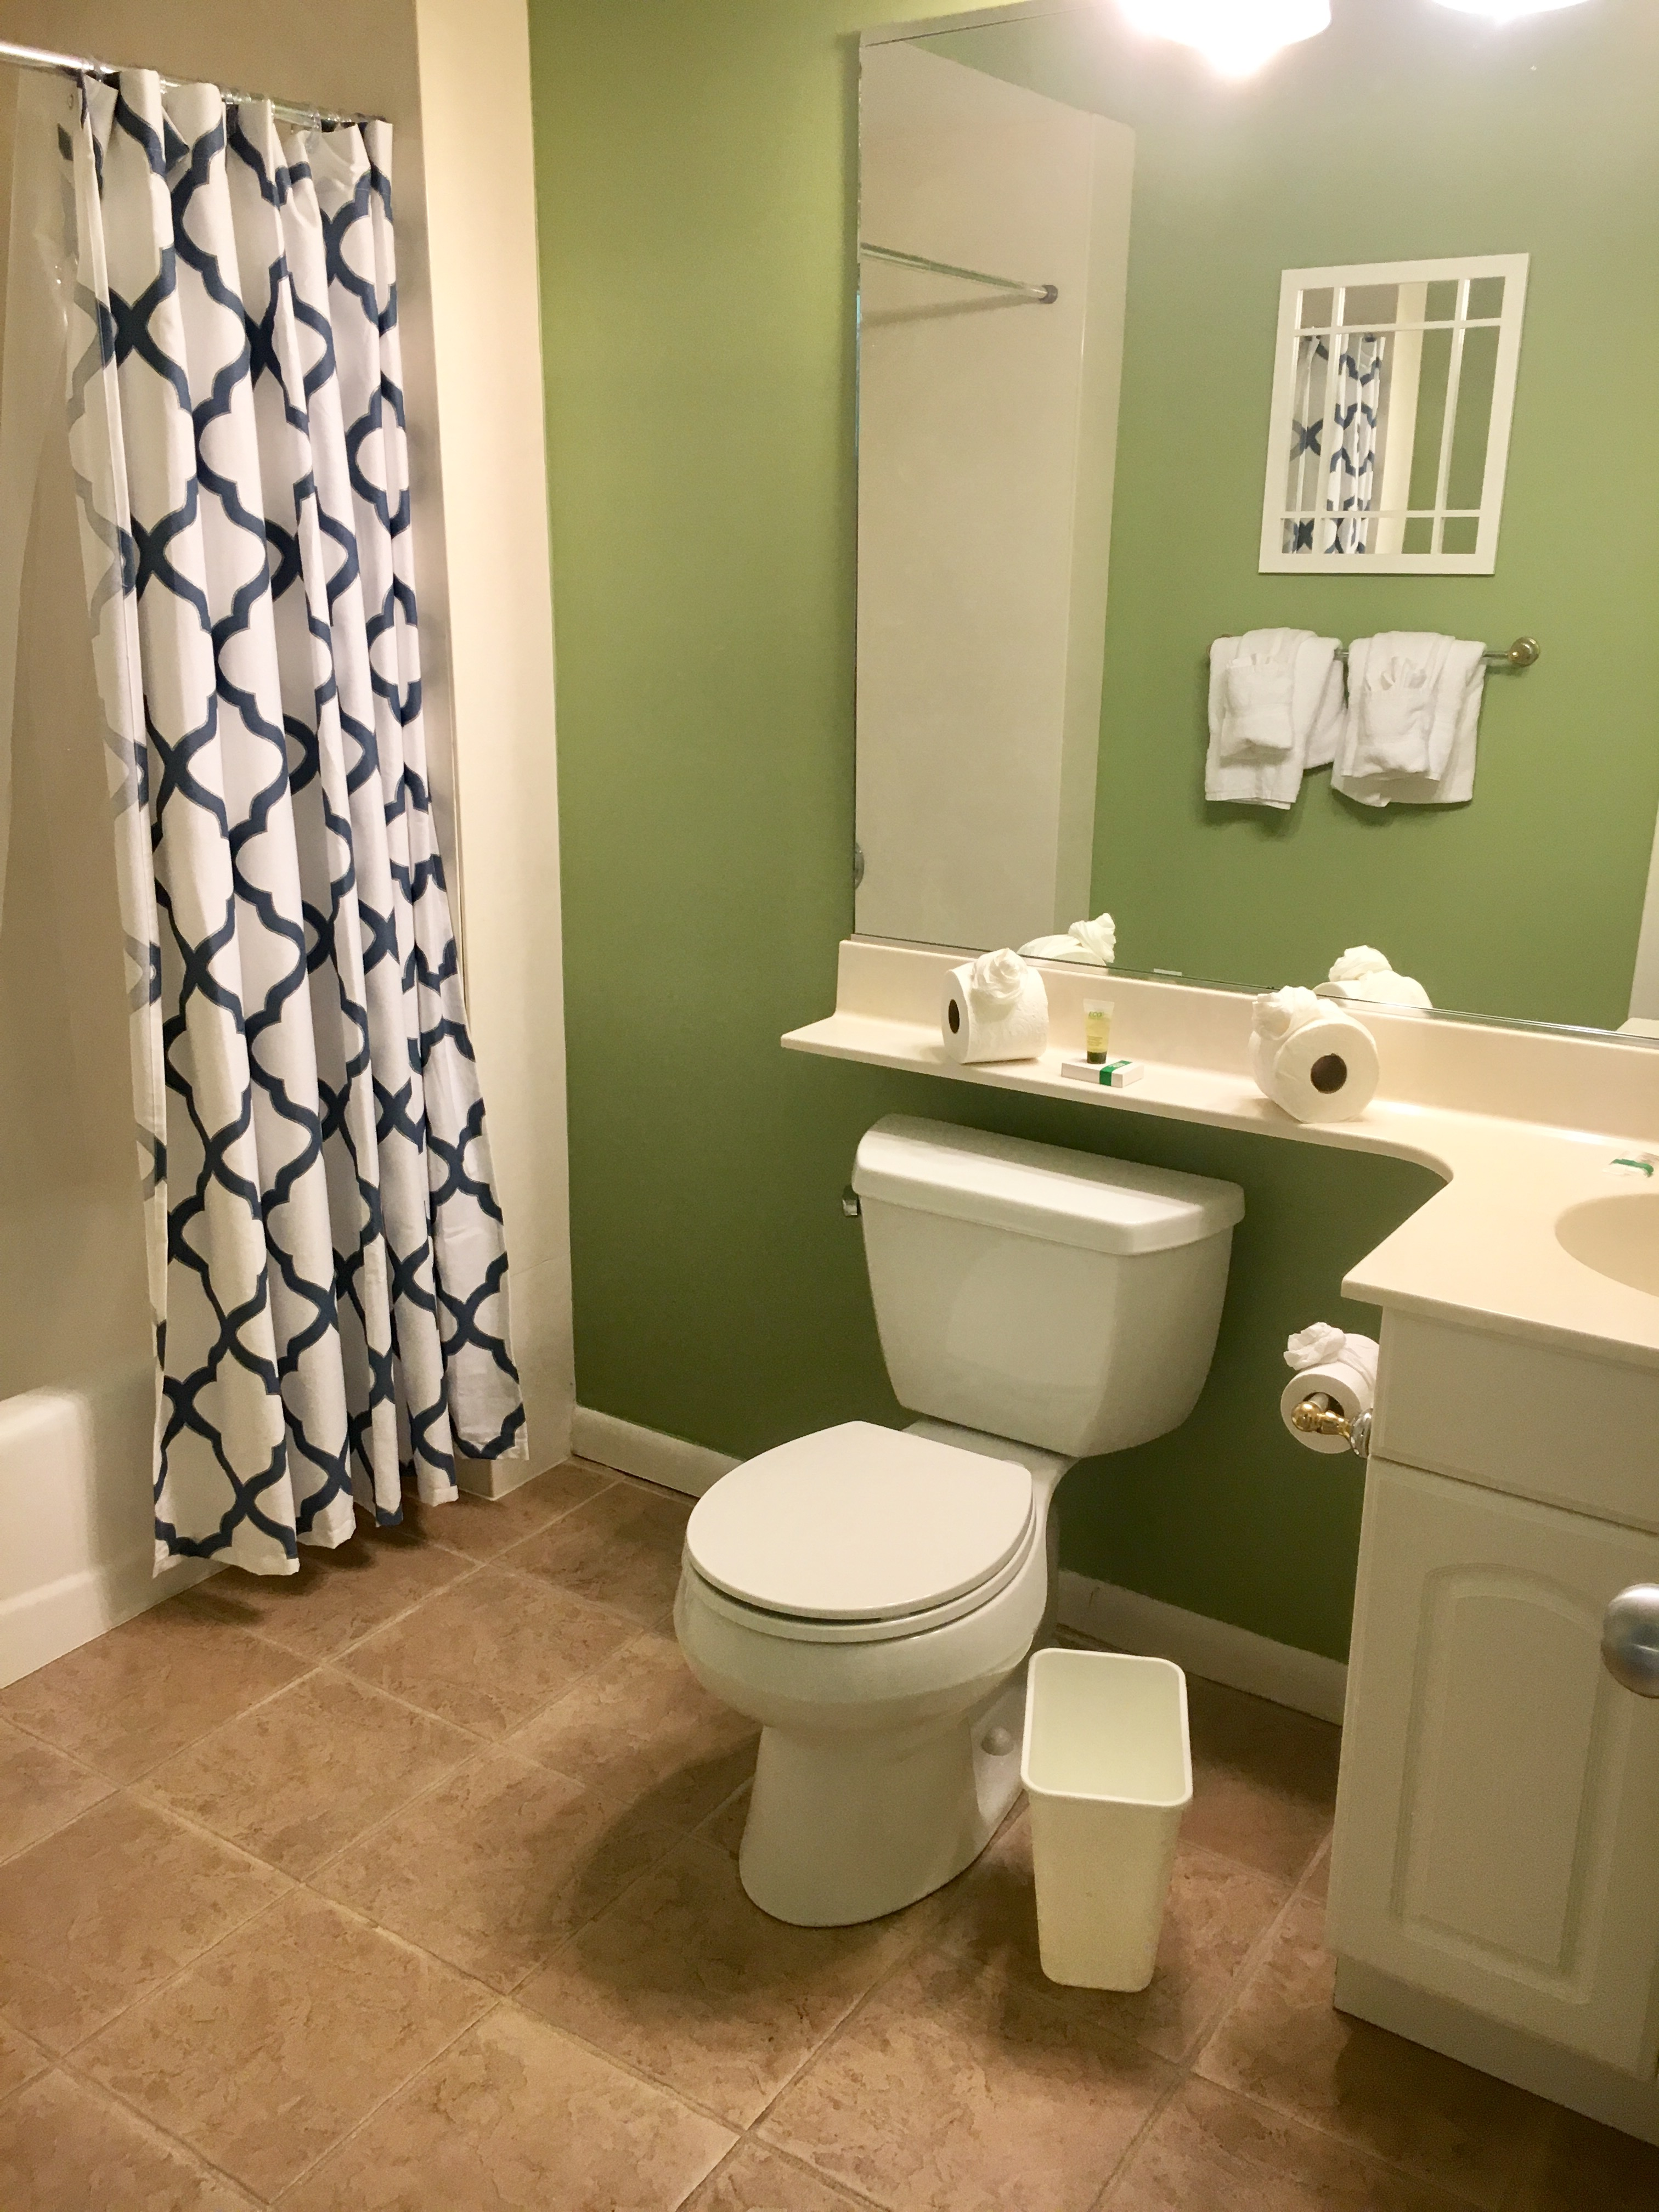 Spacious bathroom off the master bedroom with shower/tub combination.